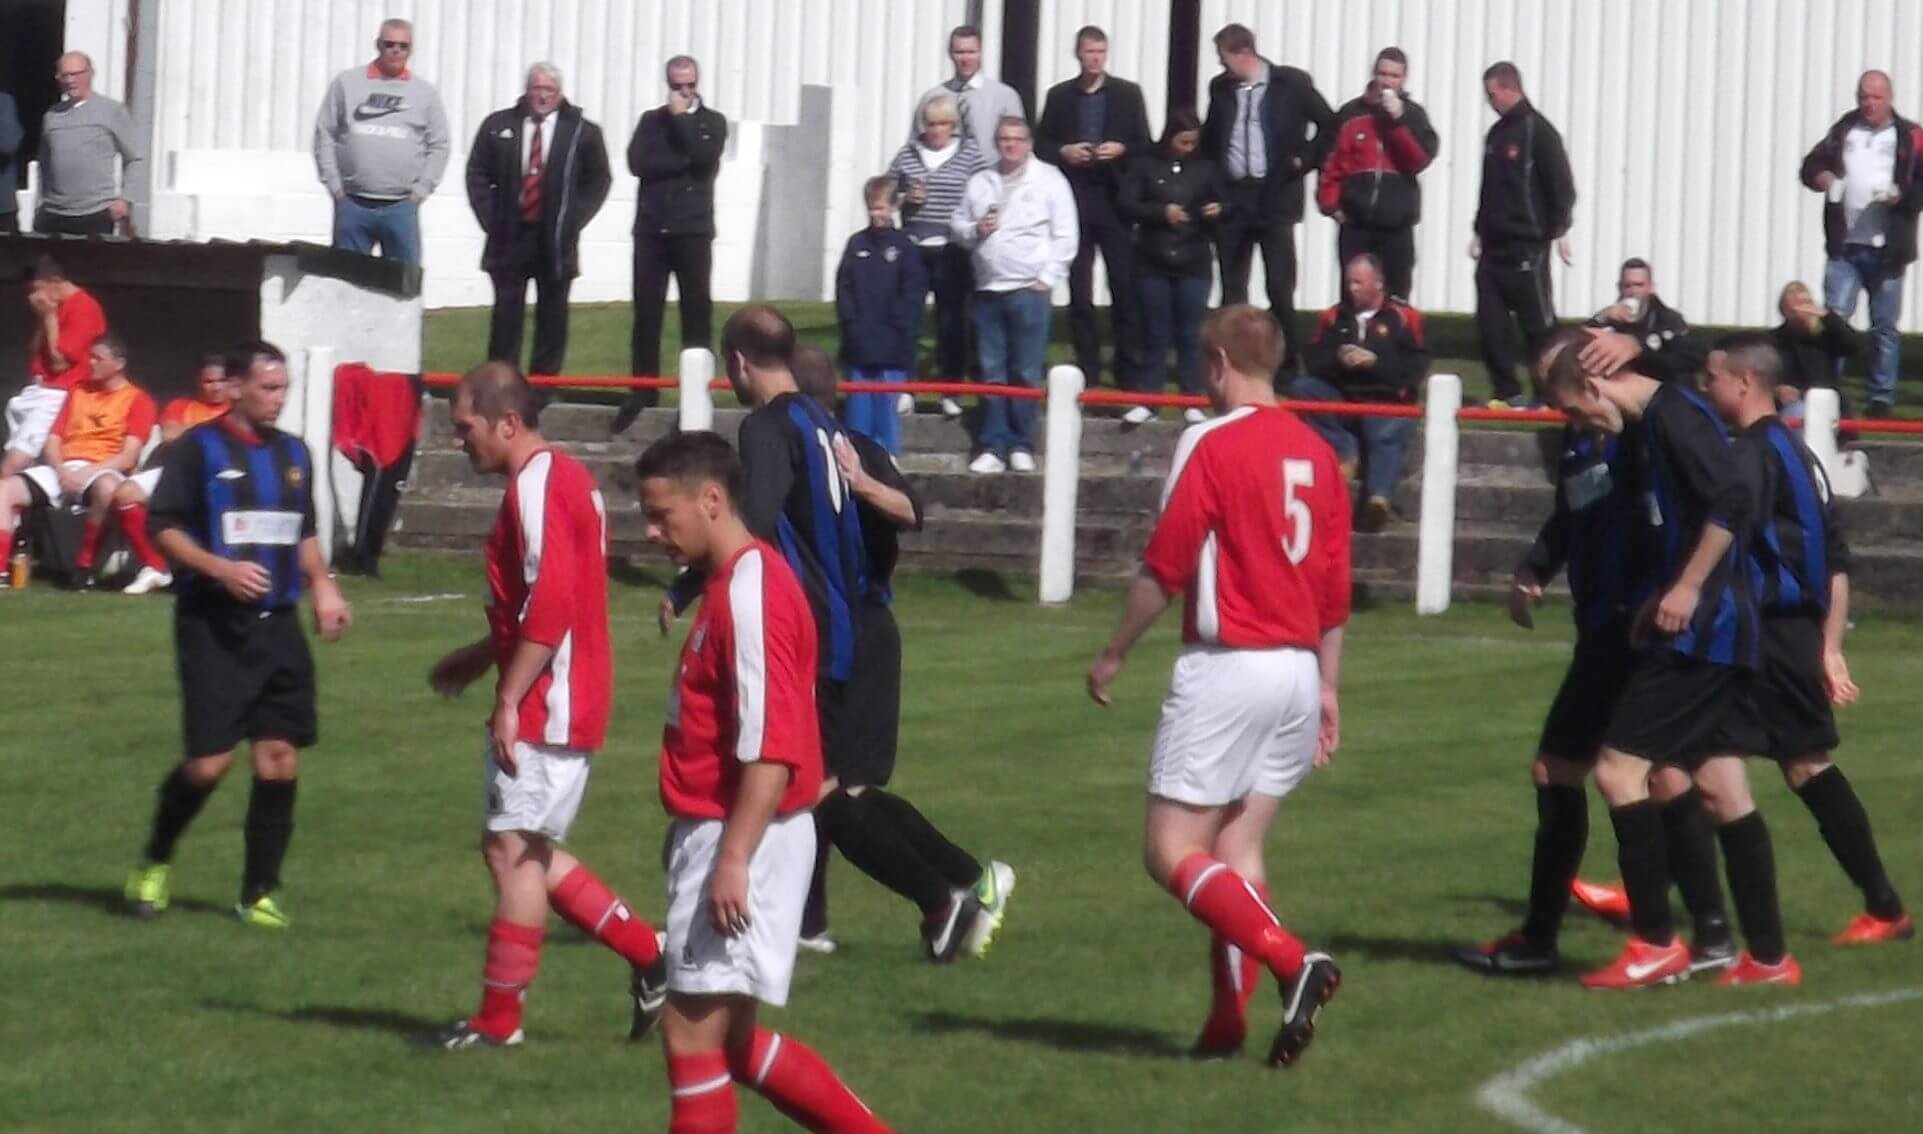 Larkhall Thistle players congratulate goal scorer Graham Gracie